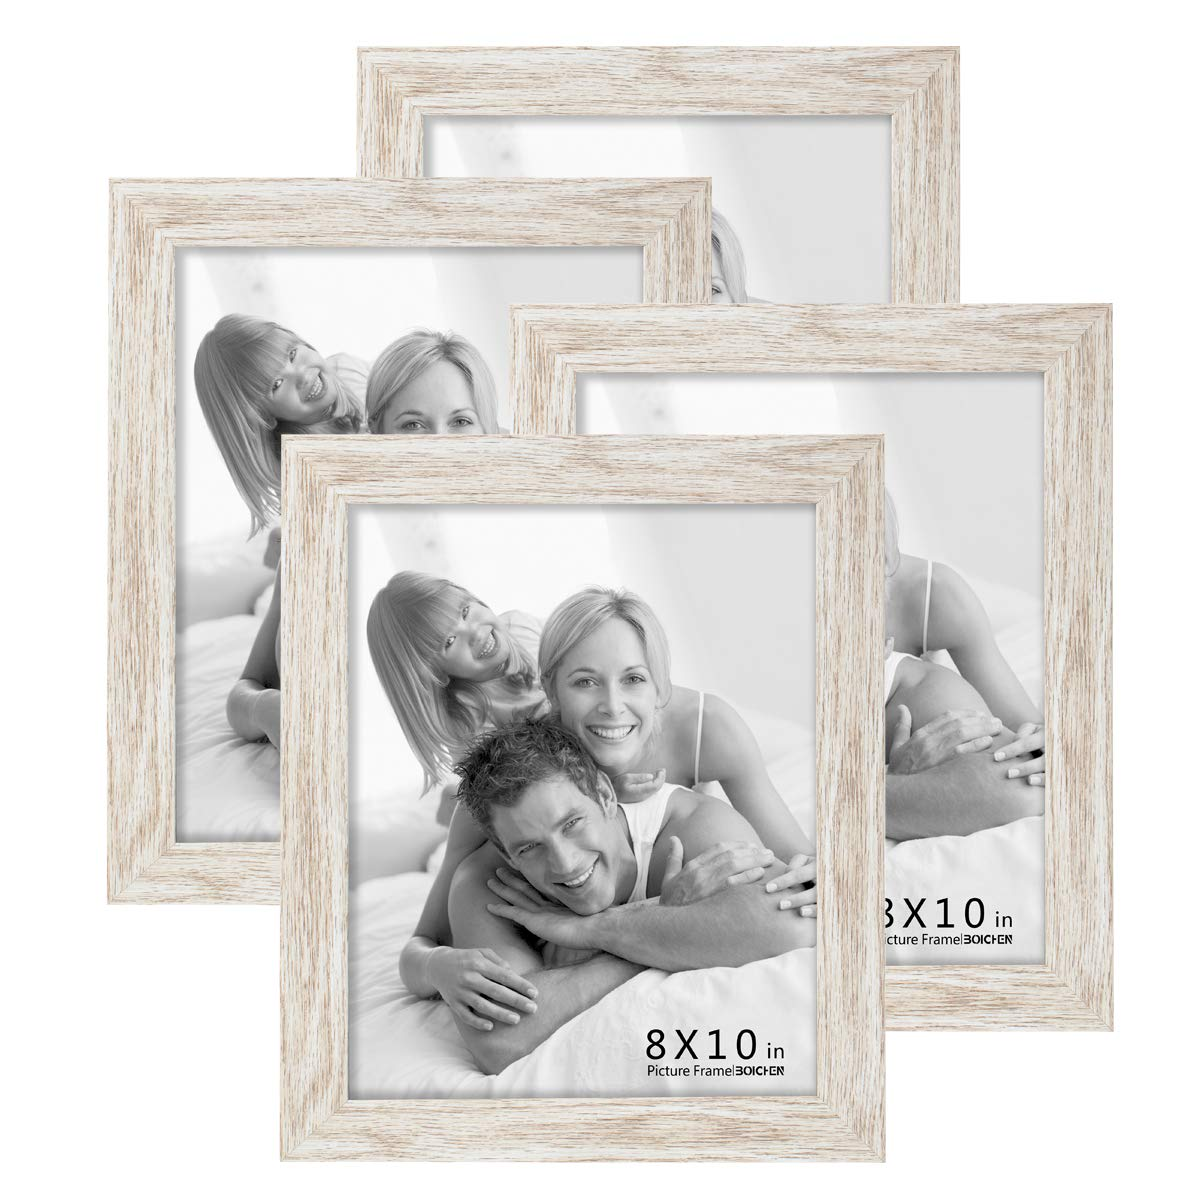 Boichen 4 Pack 8x10 Picture Frame Wood Pattern High Definition Glass Tabletop or Wall,White Woodgrain Photo Frames 8x10 4 Pack